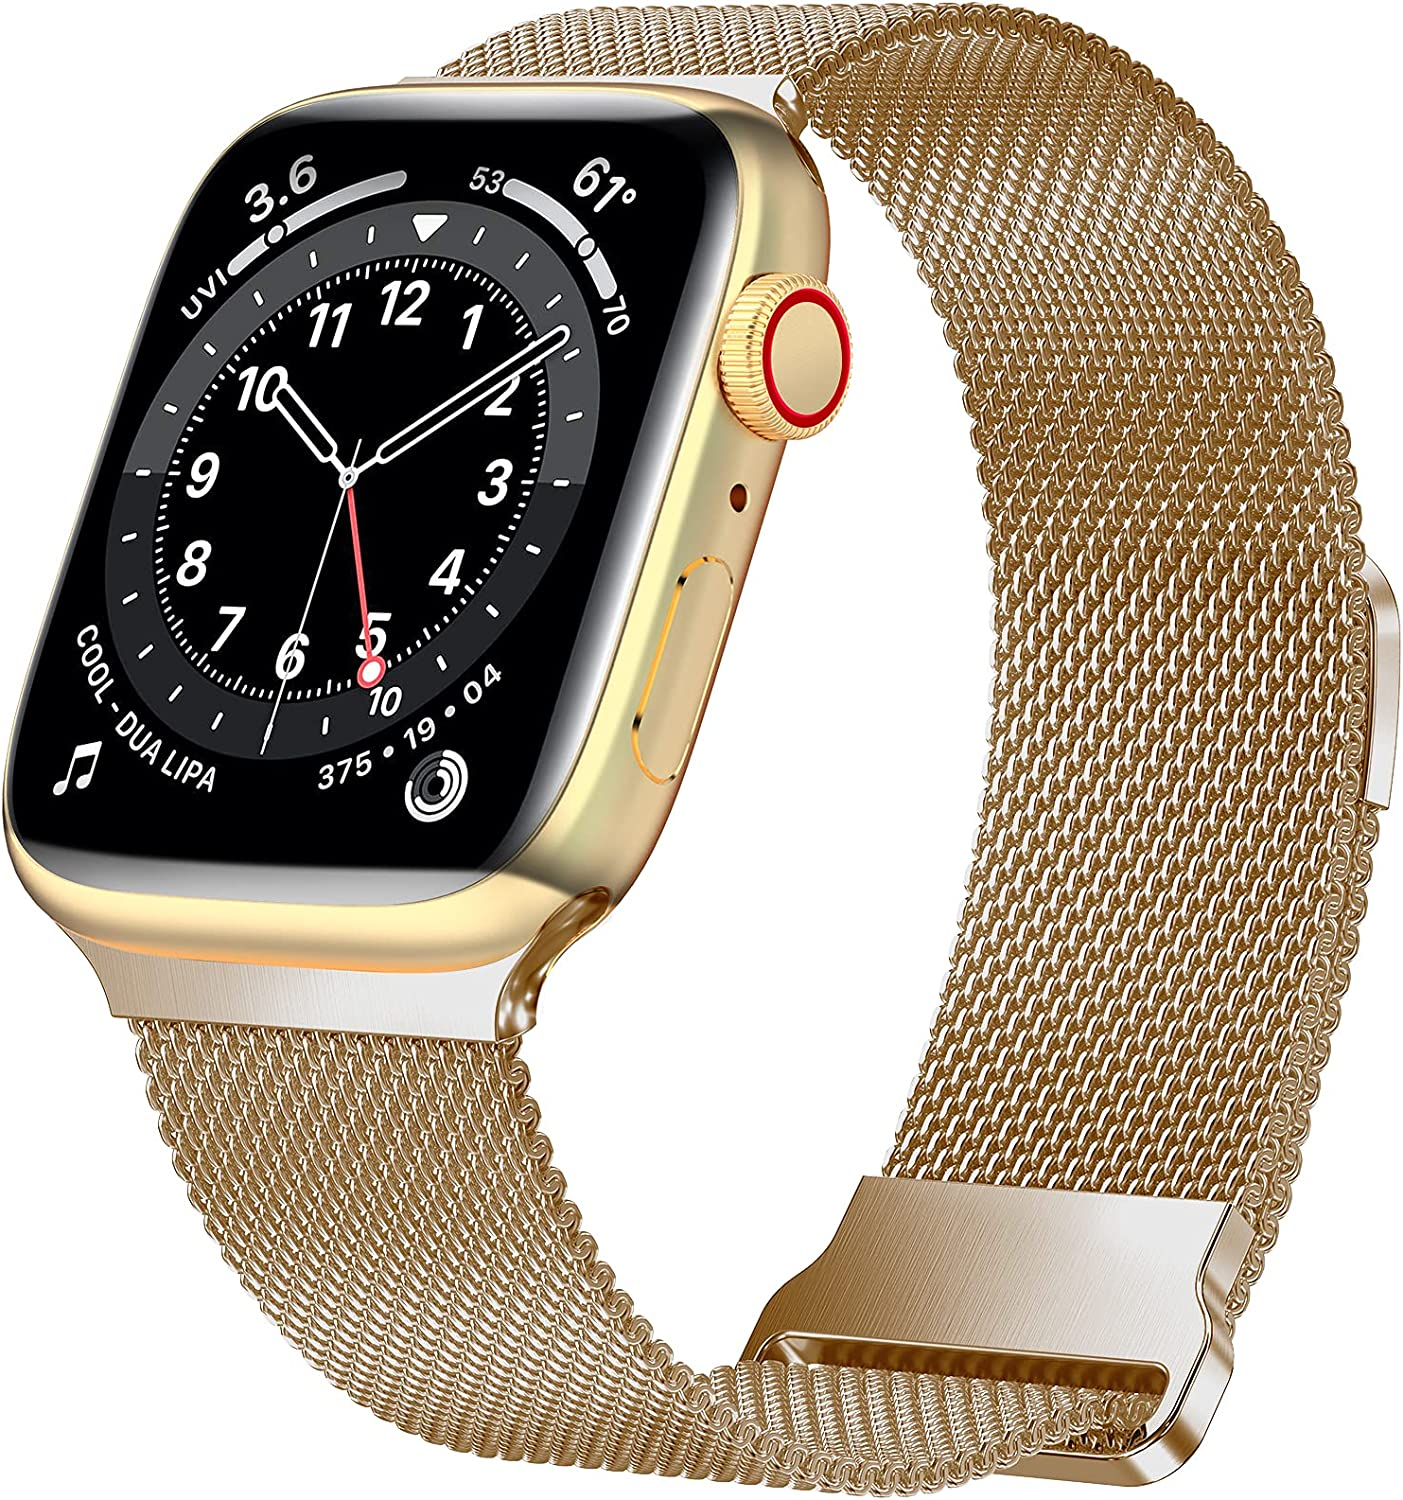 JuQBanke Magnetic Band Compatible with Apple Watch 38mm 40mm, Stainless Steel Mesh Milanese Strap with Adjustable Loop, Metal Wristband for iWatch SE Series 6 5 4 3 2 1 for Women Men, Light Gold